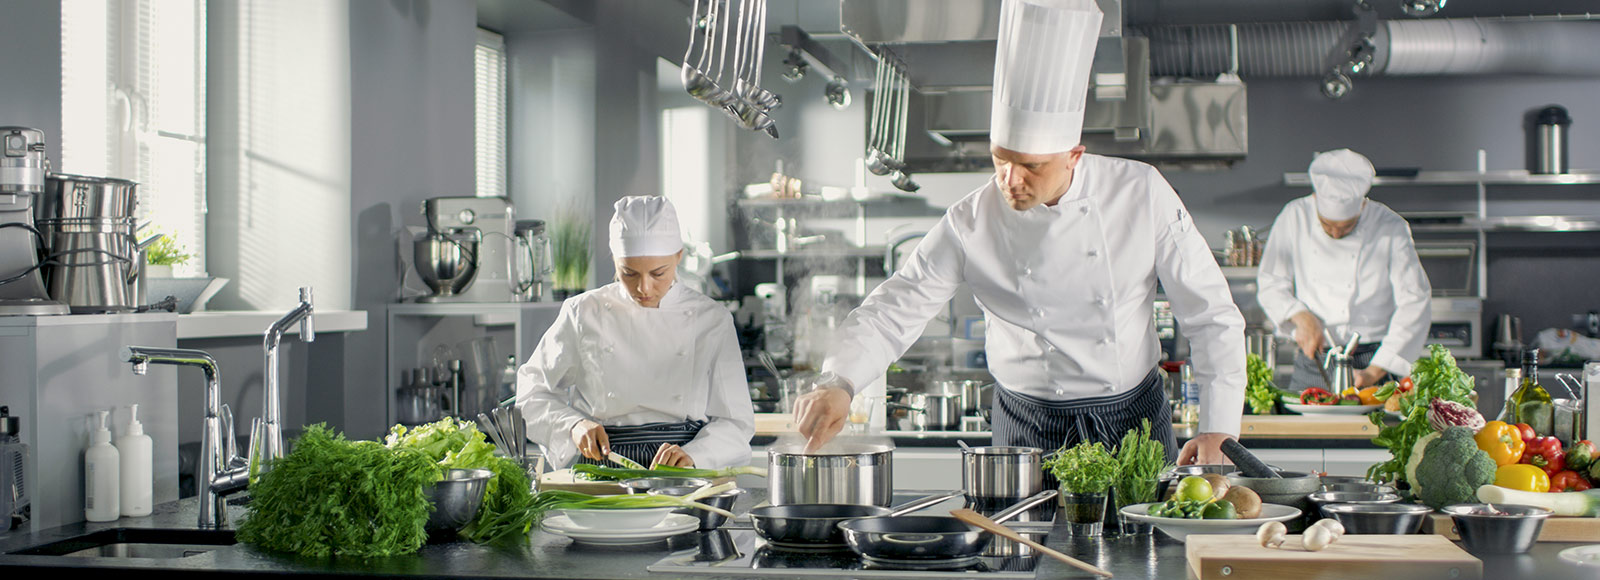 Chefs working in a gleaming stainless steel kitchen